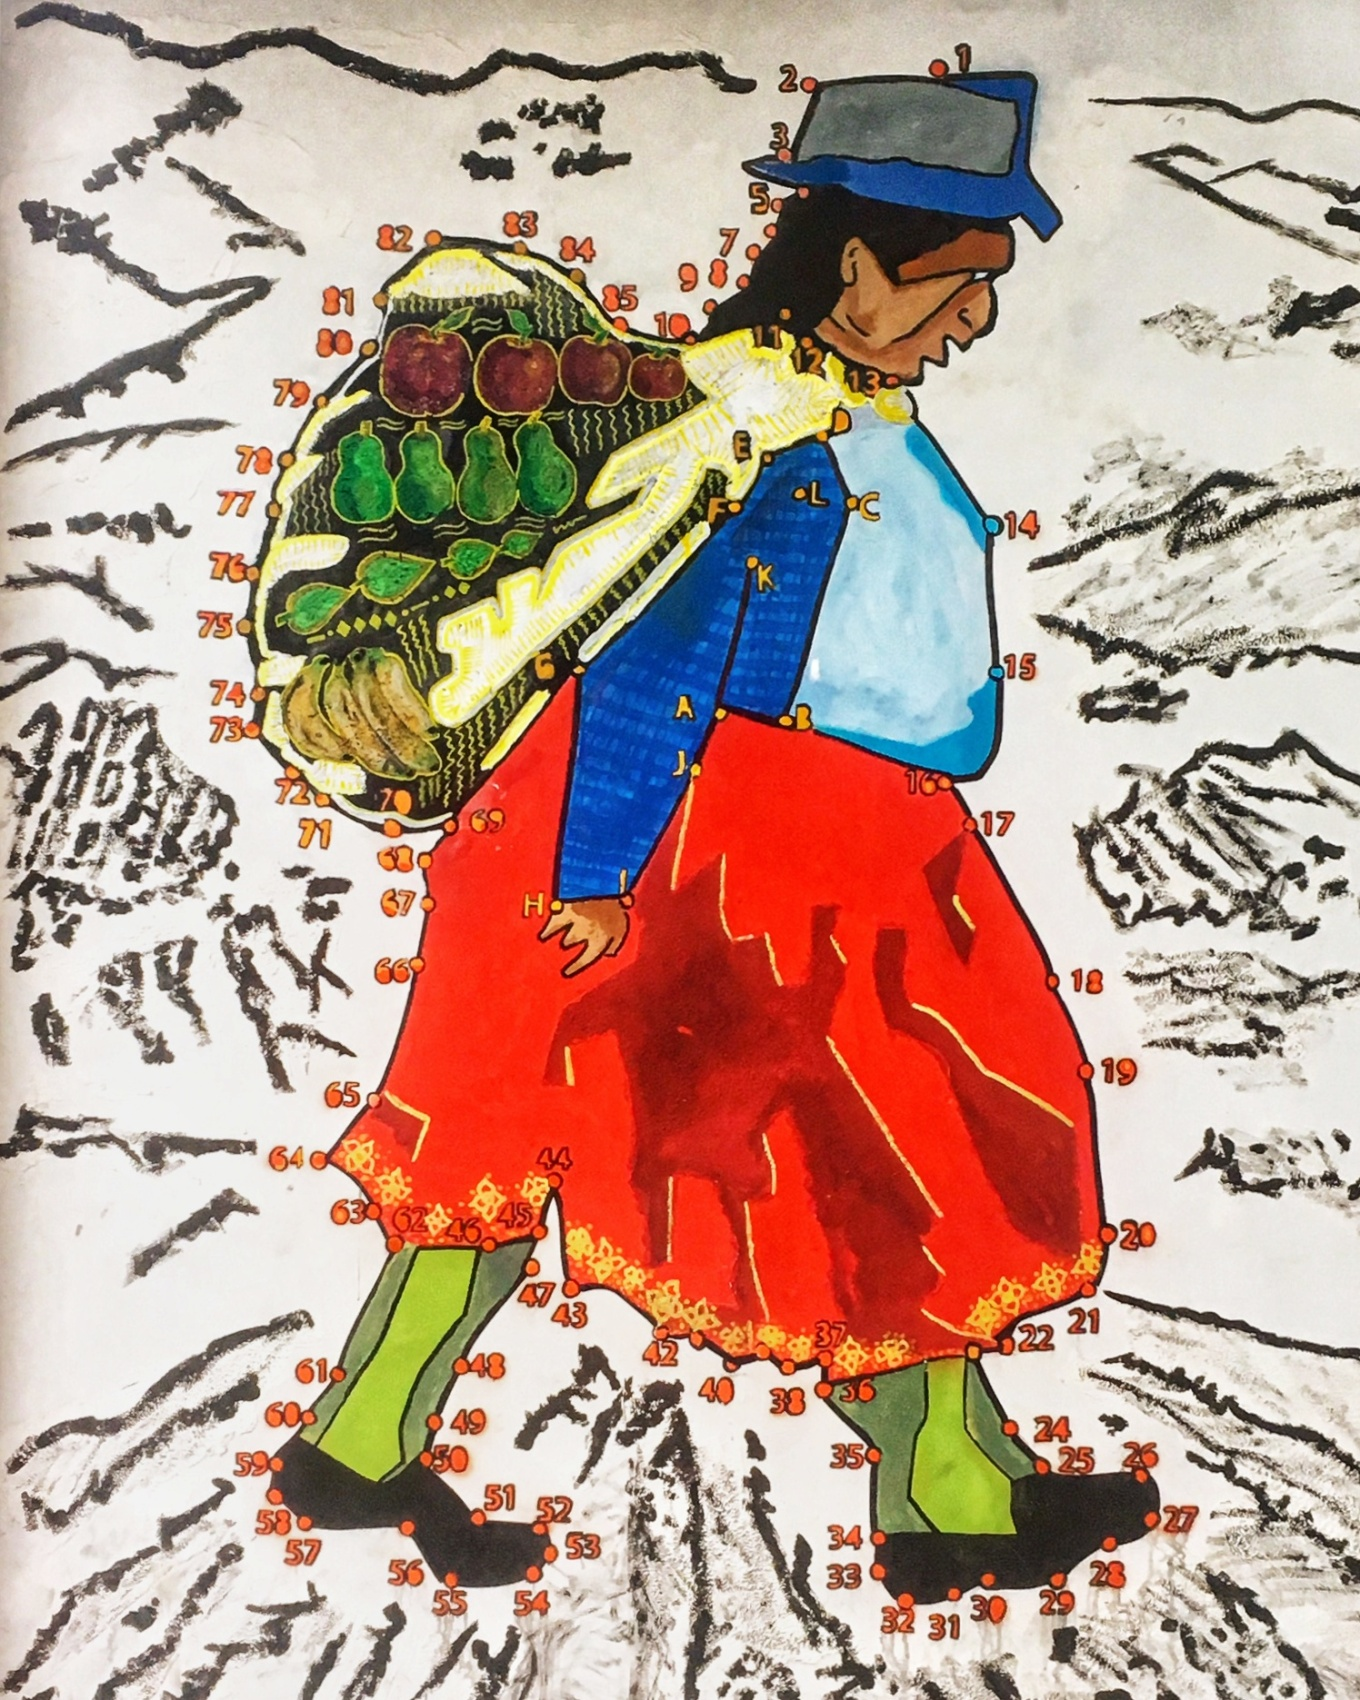 Public art depicting native women's traditional garb in Cuenca, Ecuador